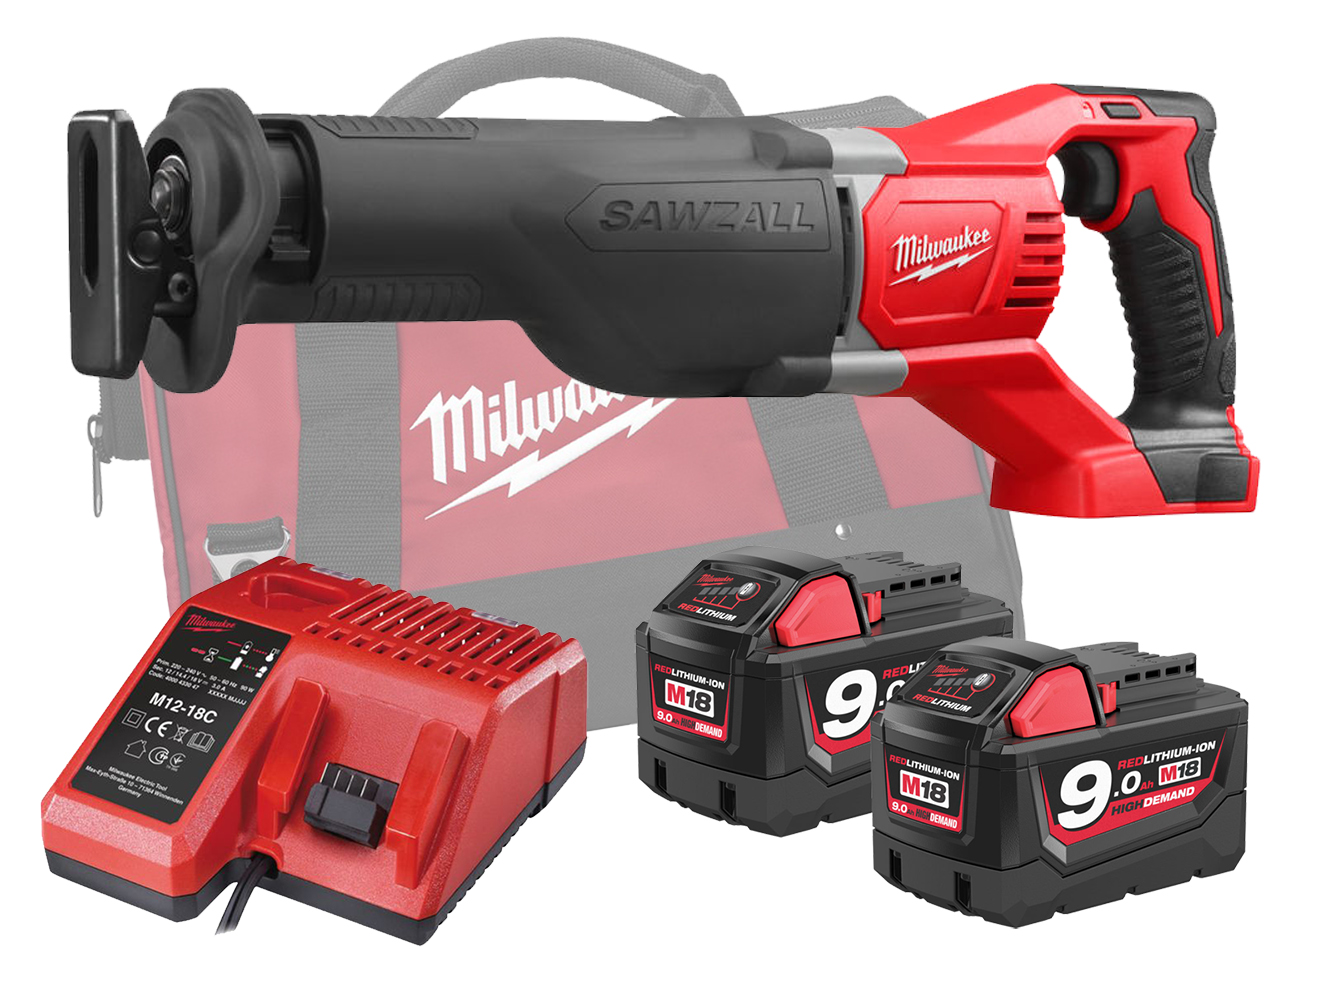 MILWAUKEE 18V BRUSHED SAWZALL (RECIPROCATING SAW) - M18BSX - 9.0AH PACK